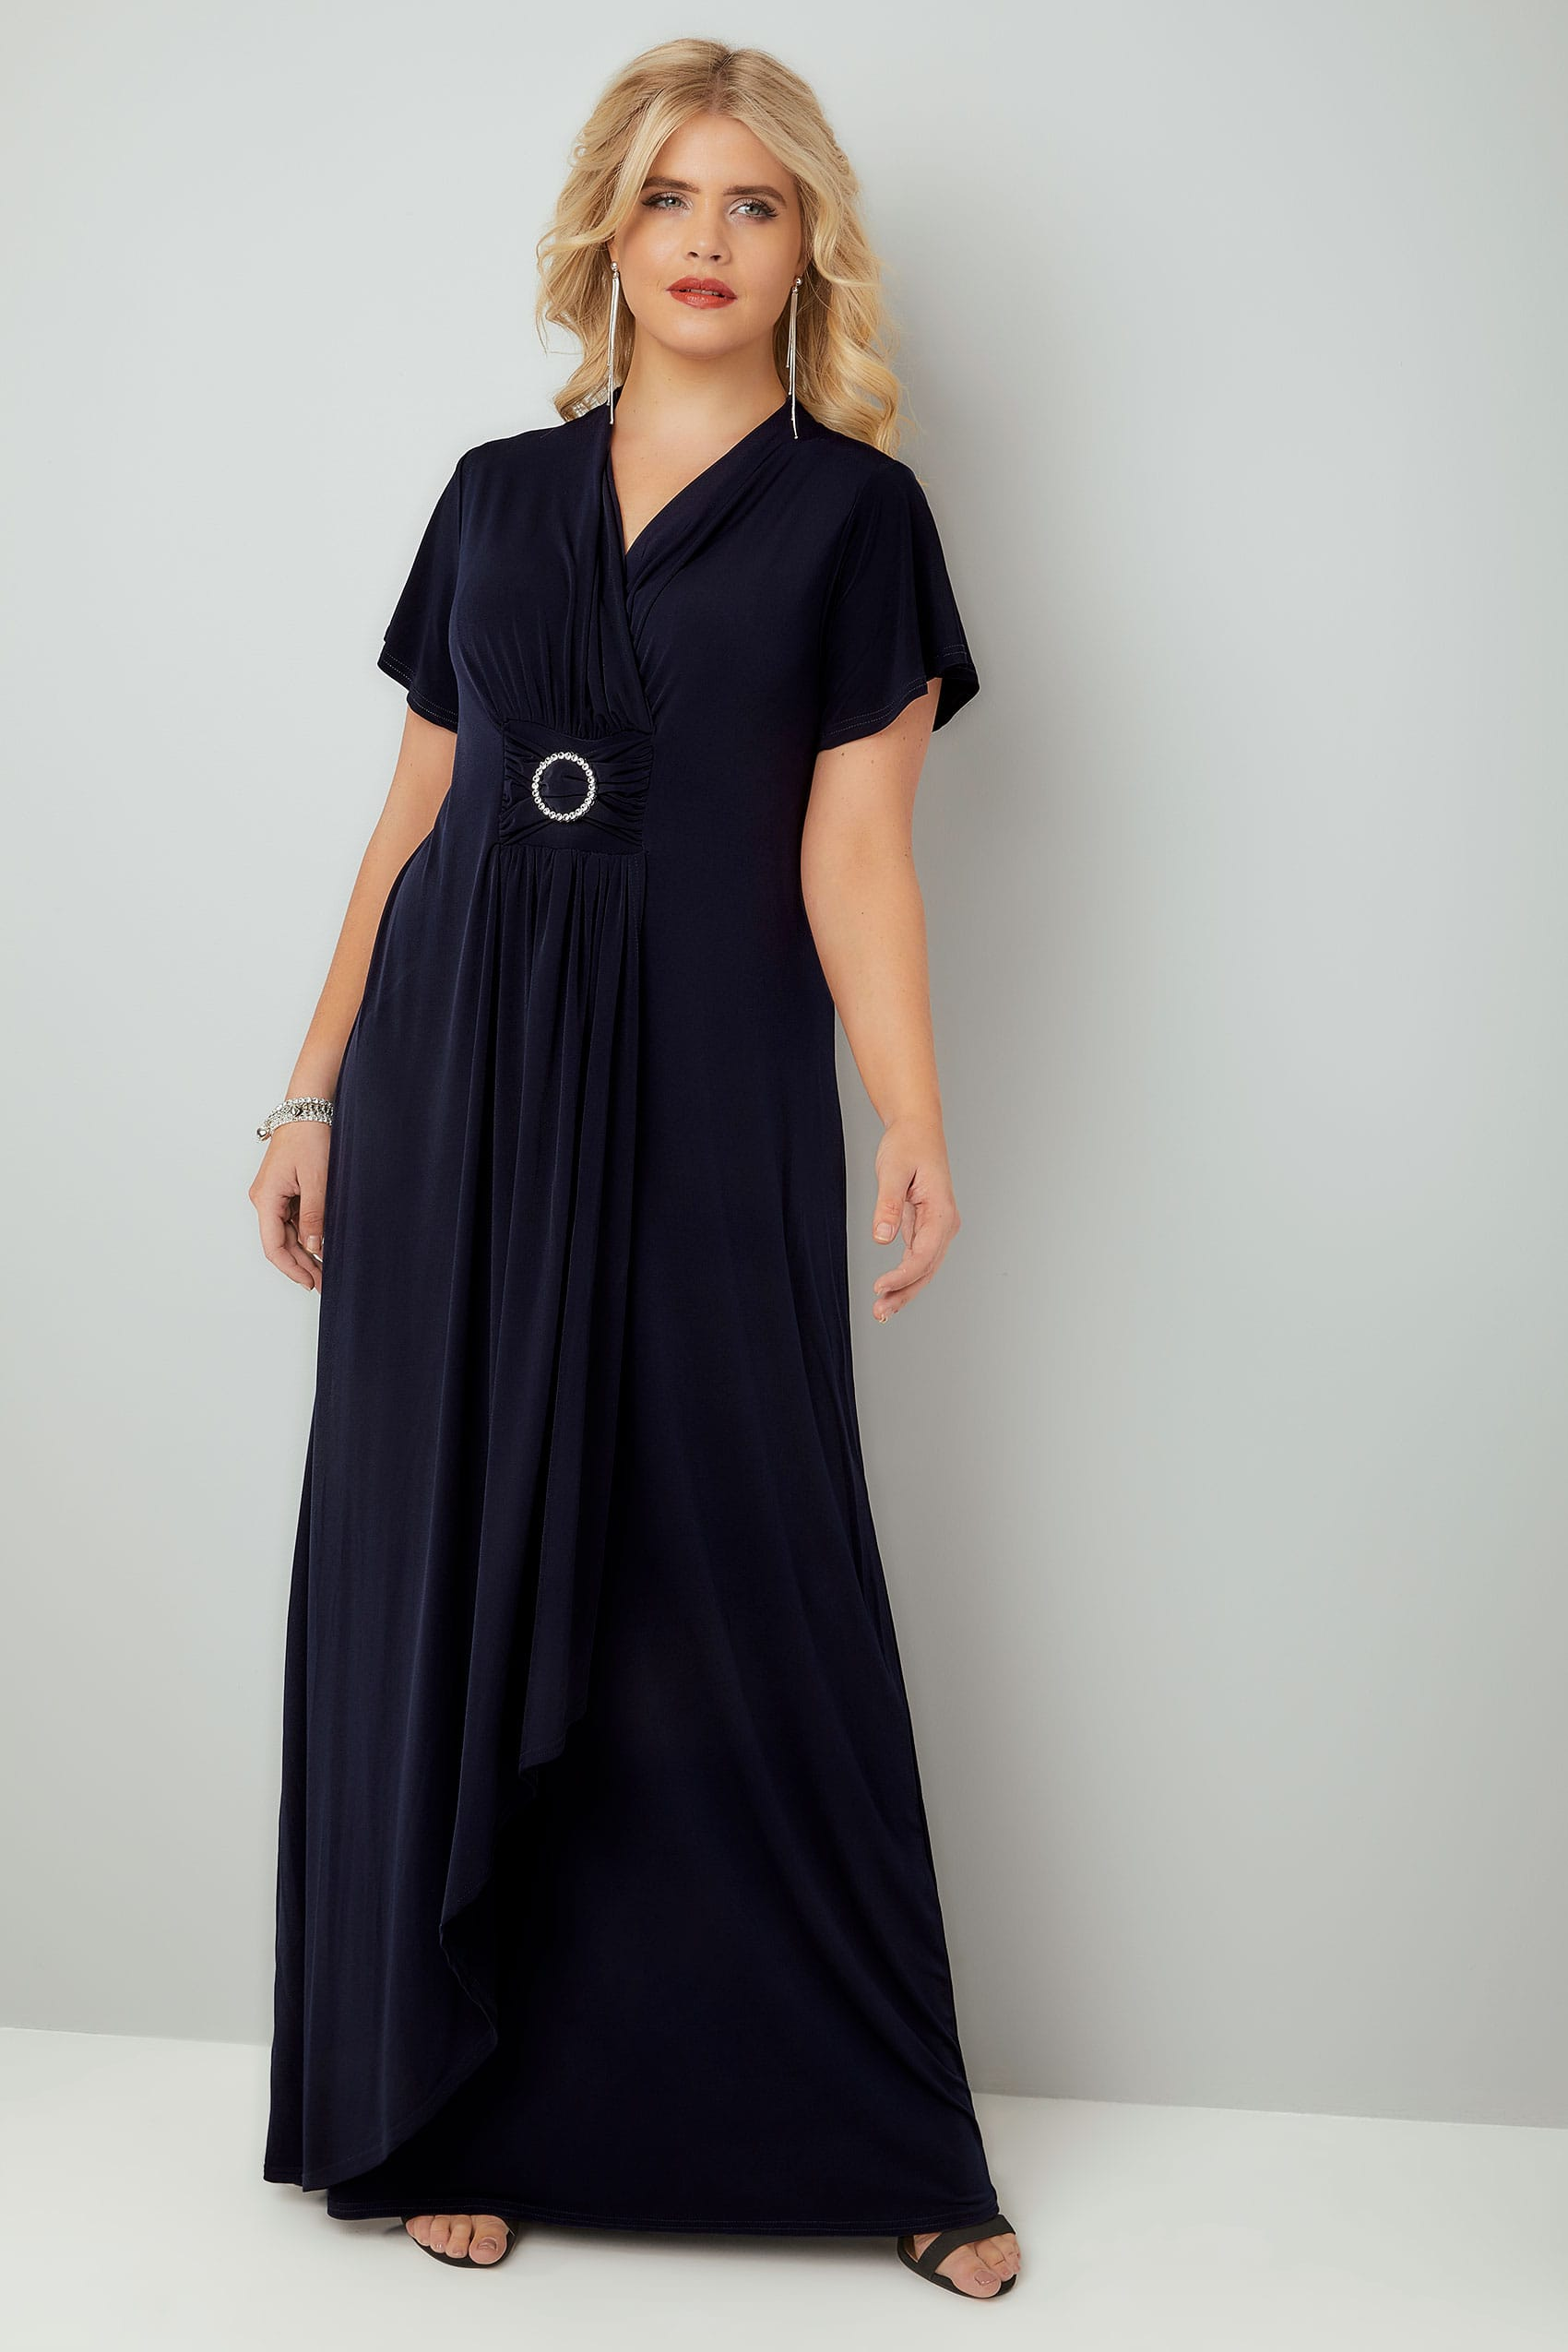 Plus size evening formal dresses yours clothing plus size evening dresses yours london navy layered maxi dress with ring detail ombrellifo Choice Image